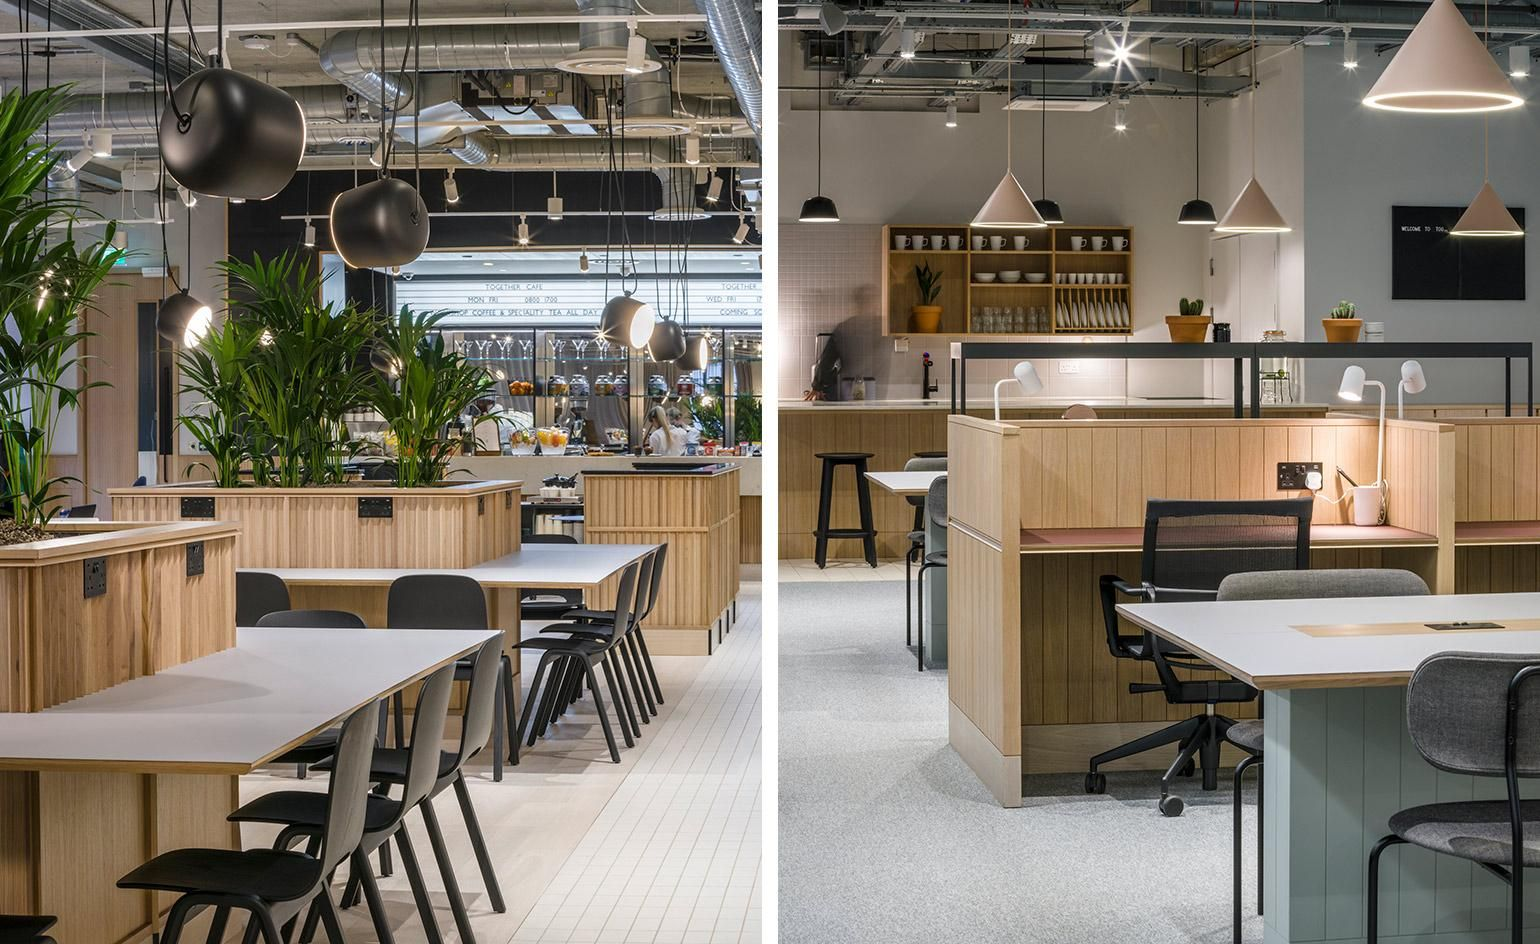 Designconscious coworking spaces around the world